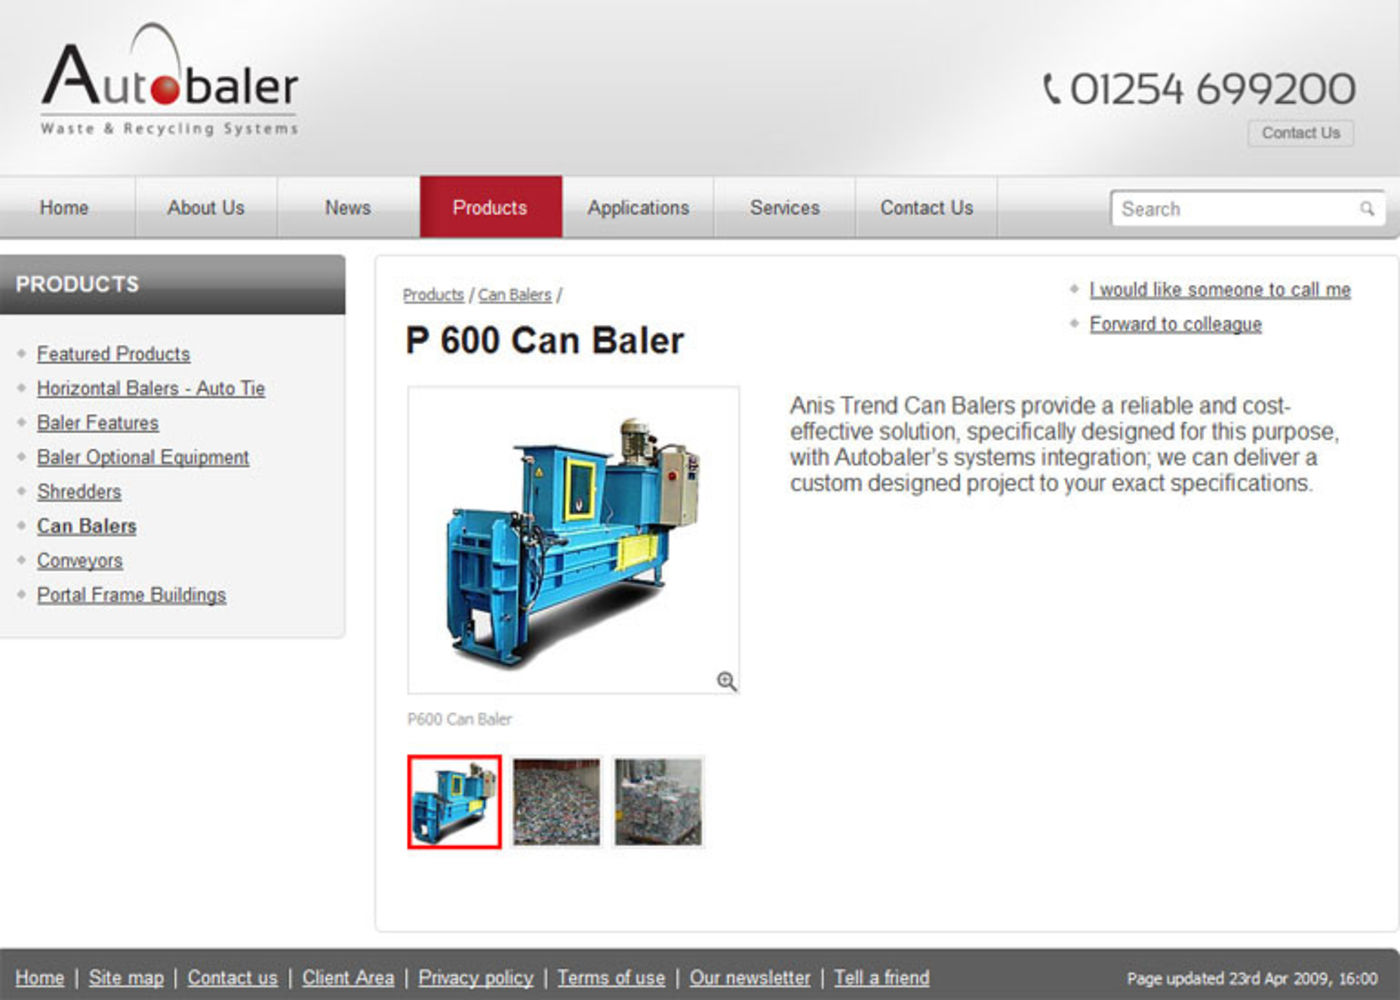 Autobaler Product page